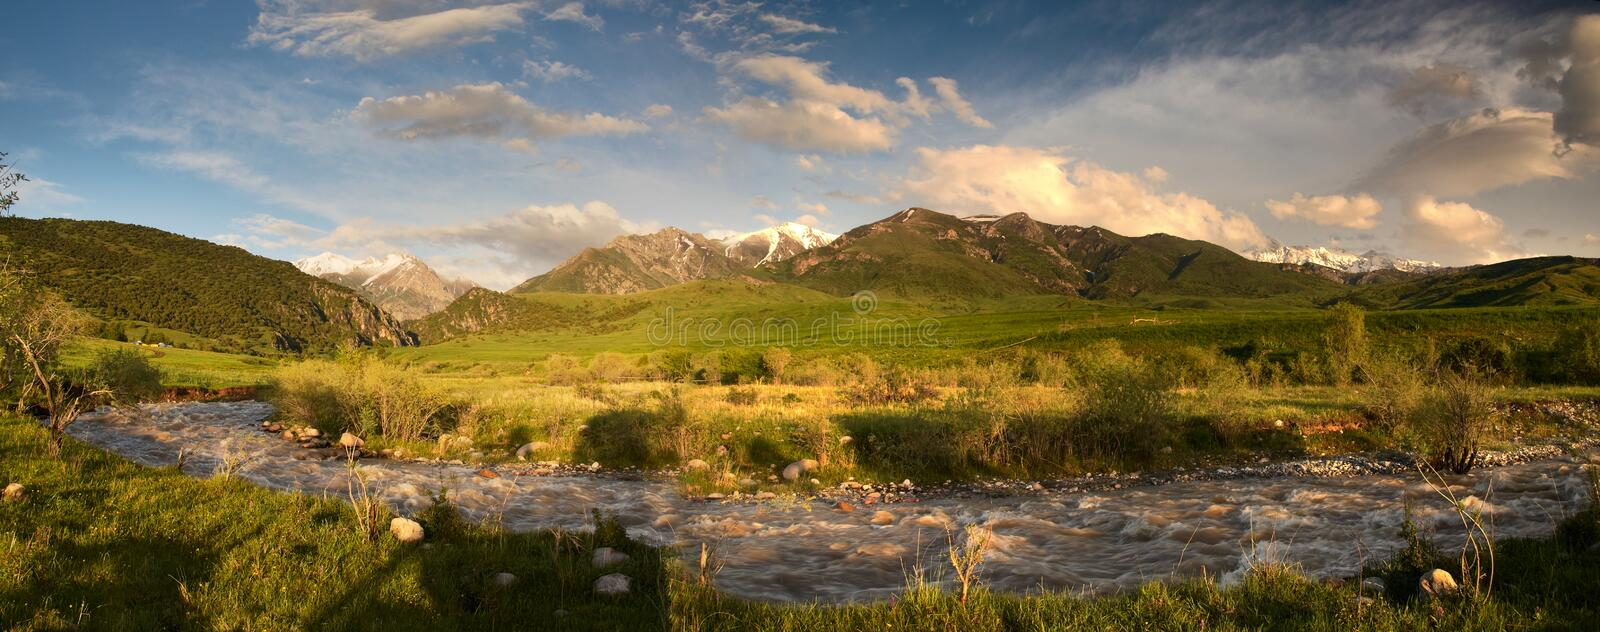 Download Peaceful View Of Mountain Range In Sunlight Stock Image - Image: 24065879